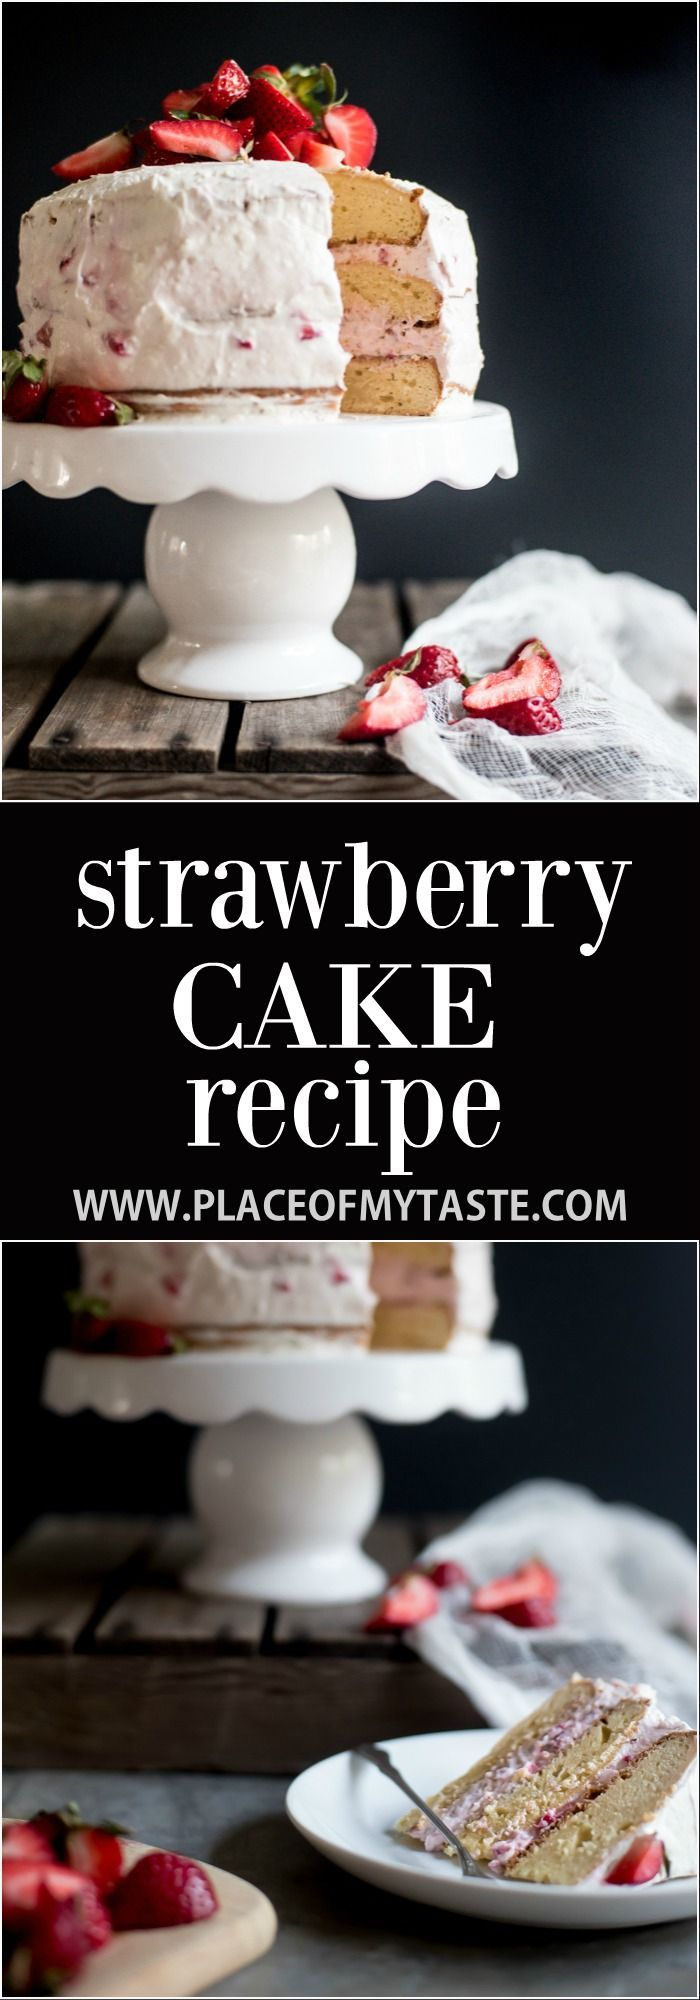 Save this recipe for later! The best Strawberry cake recipe! I love that this cake is not so sweet and the filling is incredible!